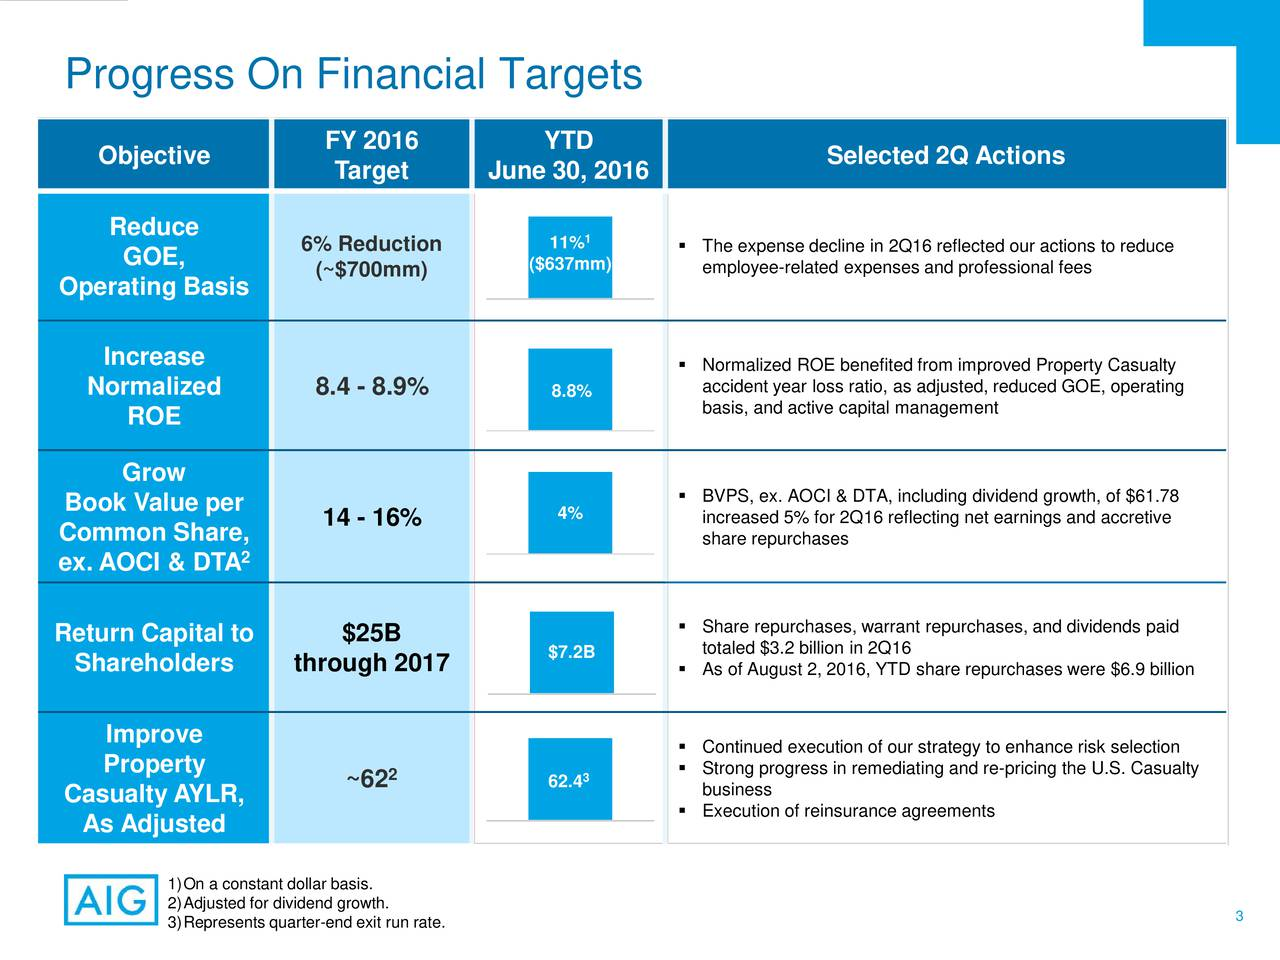 FY 2016 YTD Objective Selected 2Q Actions Target June 30, 2016 Reduce 6% Reduction 11%1  The expense decline in 2Q16 reflected our actions to reduce GOE, (~$700mm) ($637mm) employee-related expenses and professional fees Operating Basis Increase Normalized ROE benefited fromimproved Property Casualty Normalized 8.4 - 8.9% 8.8% accident year loss ratio, as adjusted, reduced GOE, operating ROE basis, and active capital management Grow Book Value per  BVPS, ex. AOCI & DTA, including dividend growth, of $61.78 14 - 16% 4% increased 5% for 2Q16 reflecting net earnings and accretive Common Share, share repurchases ex. AOCI & DTA 2 Share repurchases, warrant repurchases, and dividends paid Return Capital to $25B totaled $3.2 billion in 2Q16 Shareholders through 2017 $7.2B  As of August 2, 2016, YTD share repurchases were $6.9 billion Improve  Continued execution of our strategy to enhance risk selection Property 2 3  Strong progress in remediating and re-pricing the U.S. Casualty Casualty AYLR, ~62 62.4 business Execution of reinsurance agreements As Adjusted 1)On a constant dollar basis. 3)Represents quarter-end exit run rate. 3